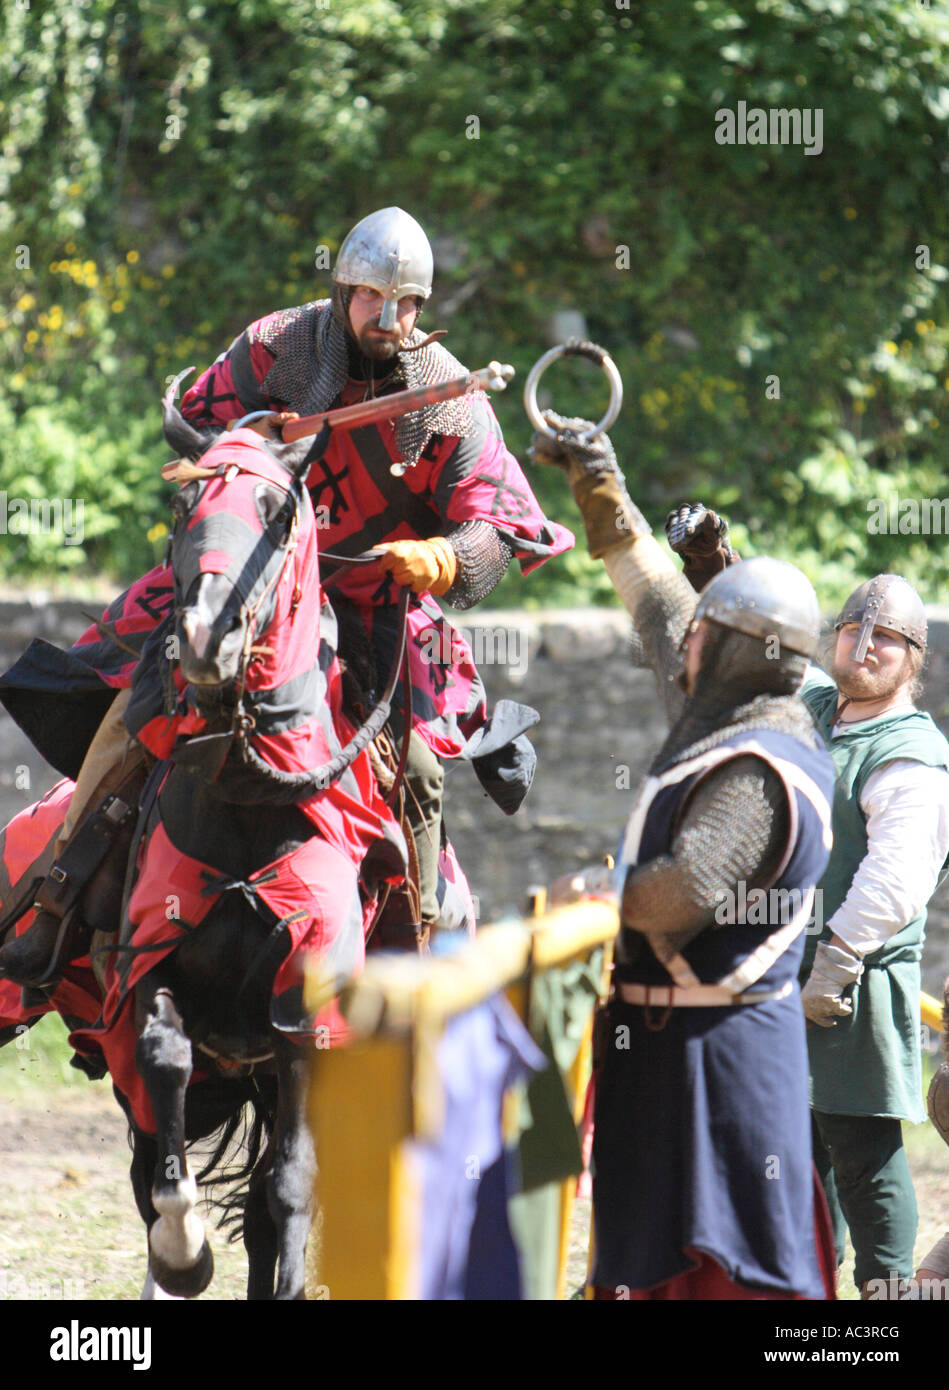 Mounted knight in lance skill competition at Koenigstein Taunus Germany knights tournament 2007 - Stock Image